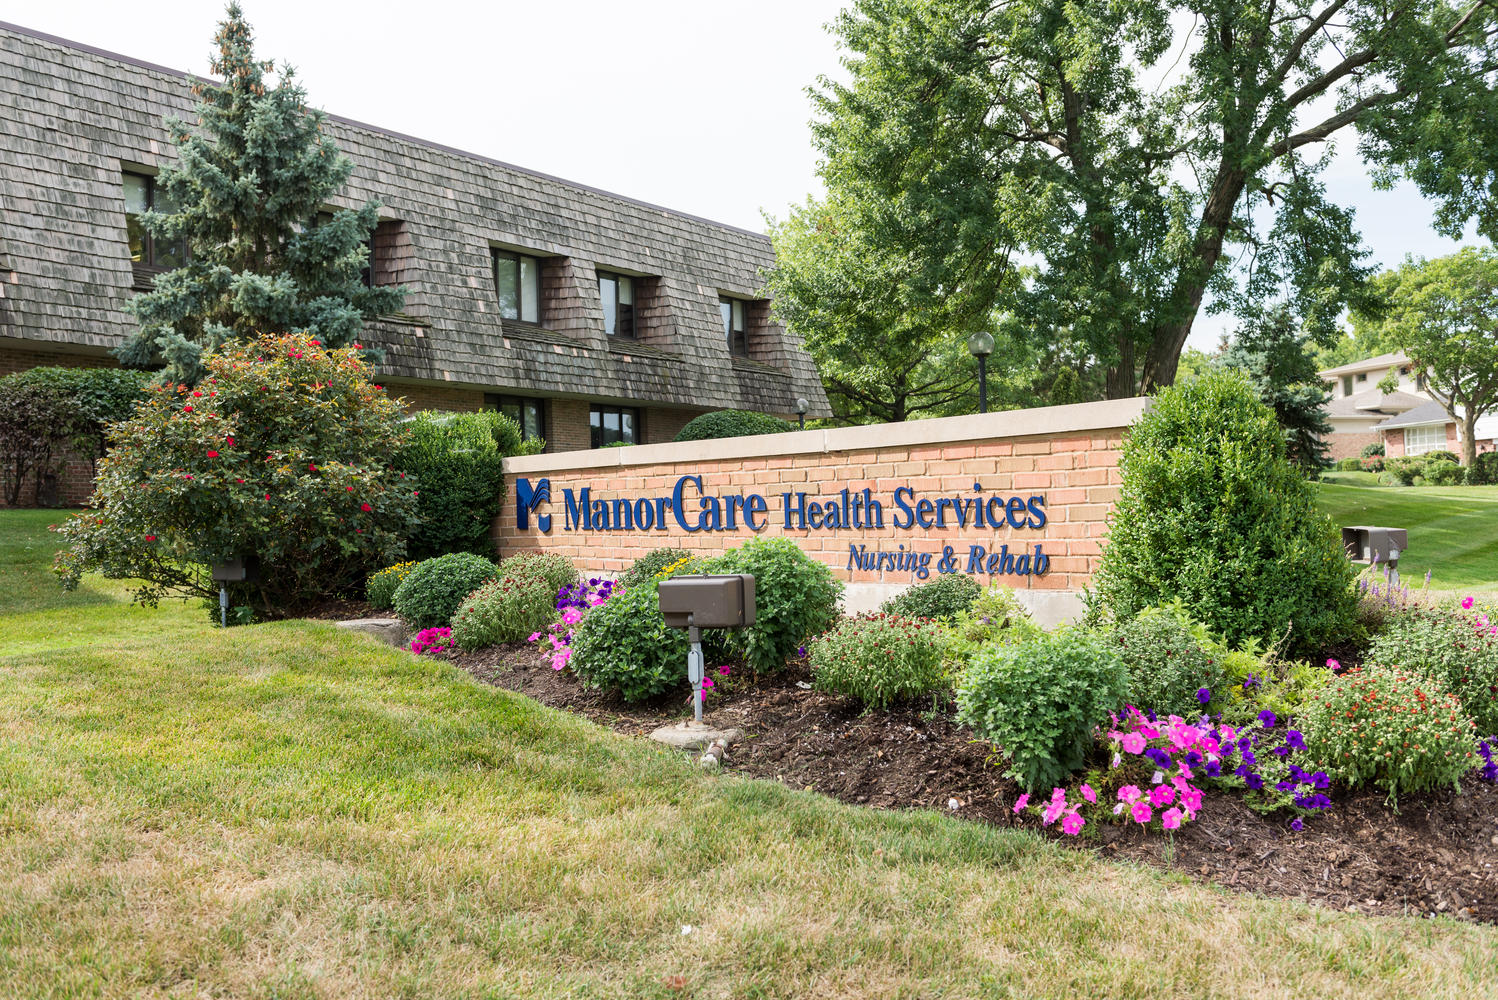 Manorcare Health Services Large 001 Welcome To Manorcare Health 1499X1000 72Dpi